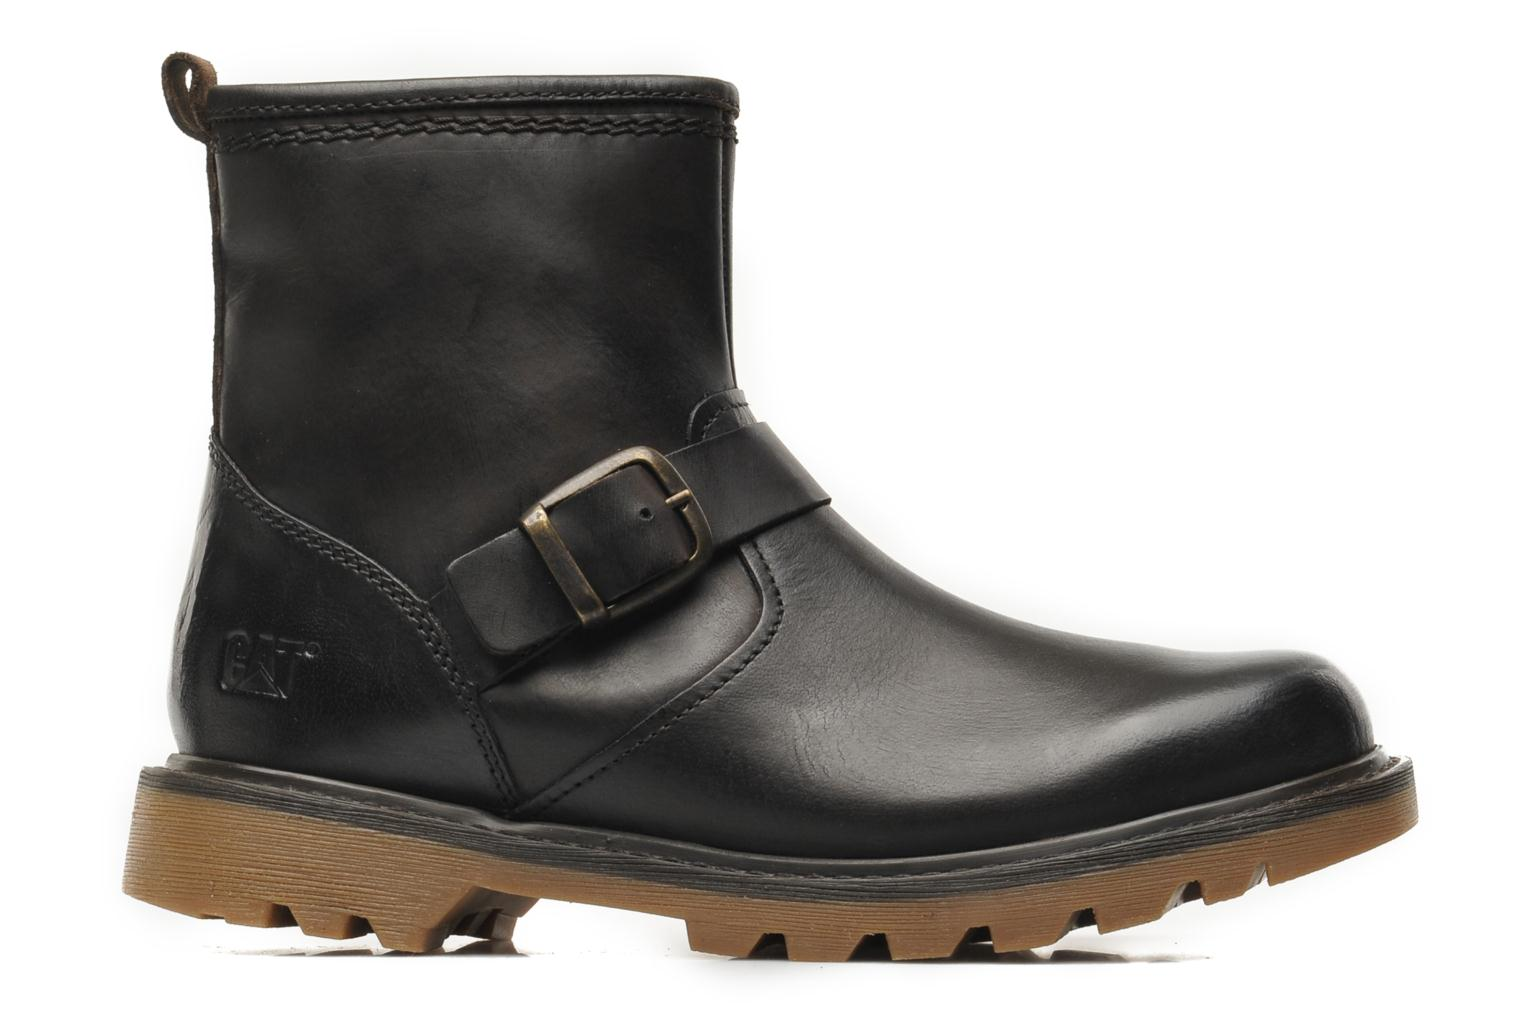 UTILITY BIKER MENS DARK BROWN